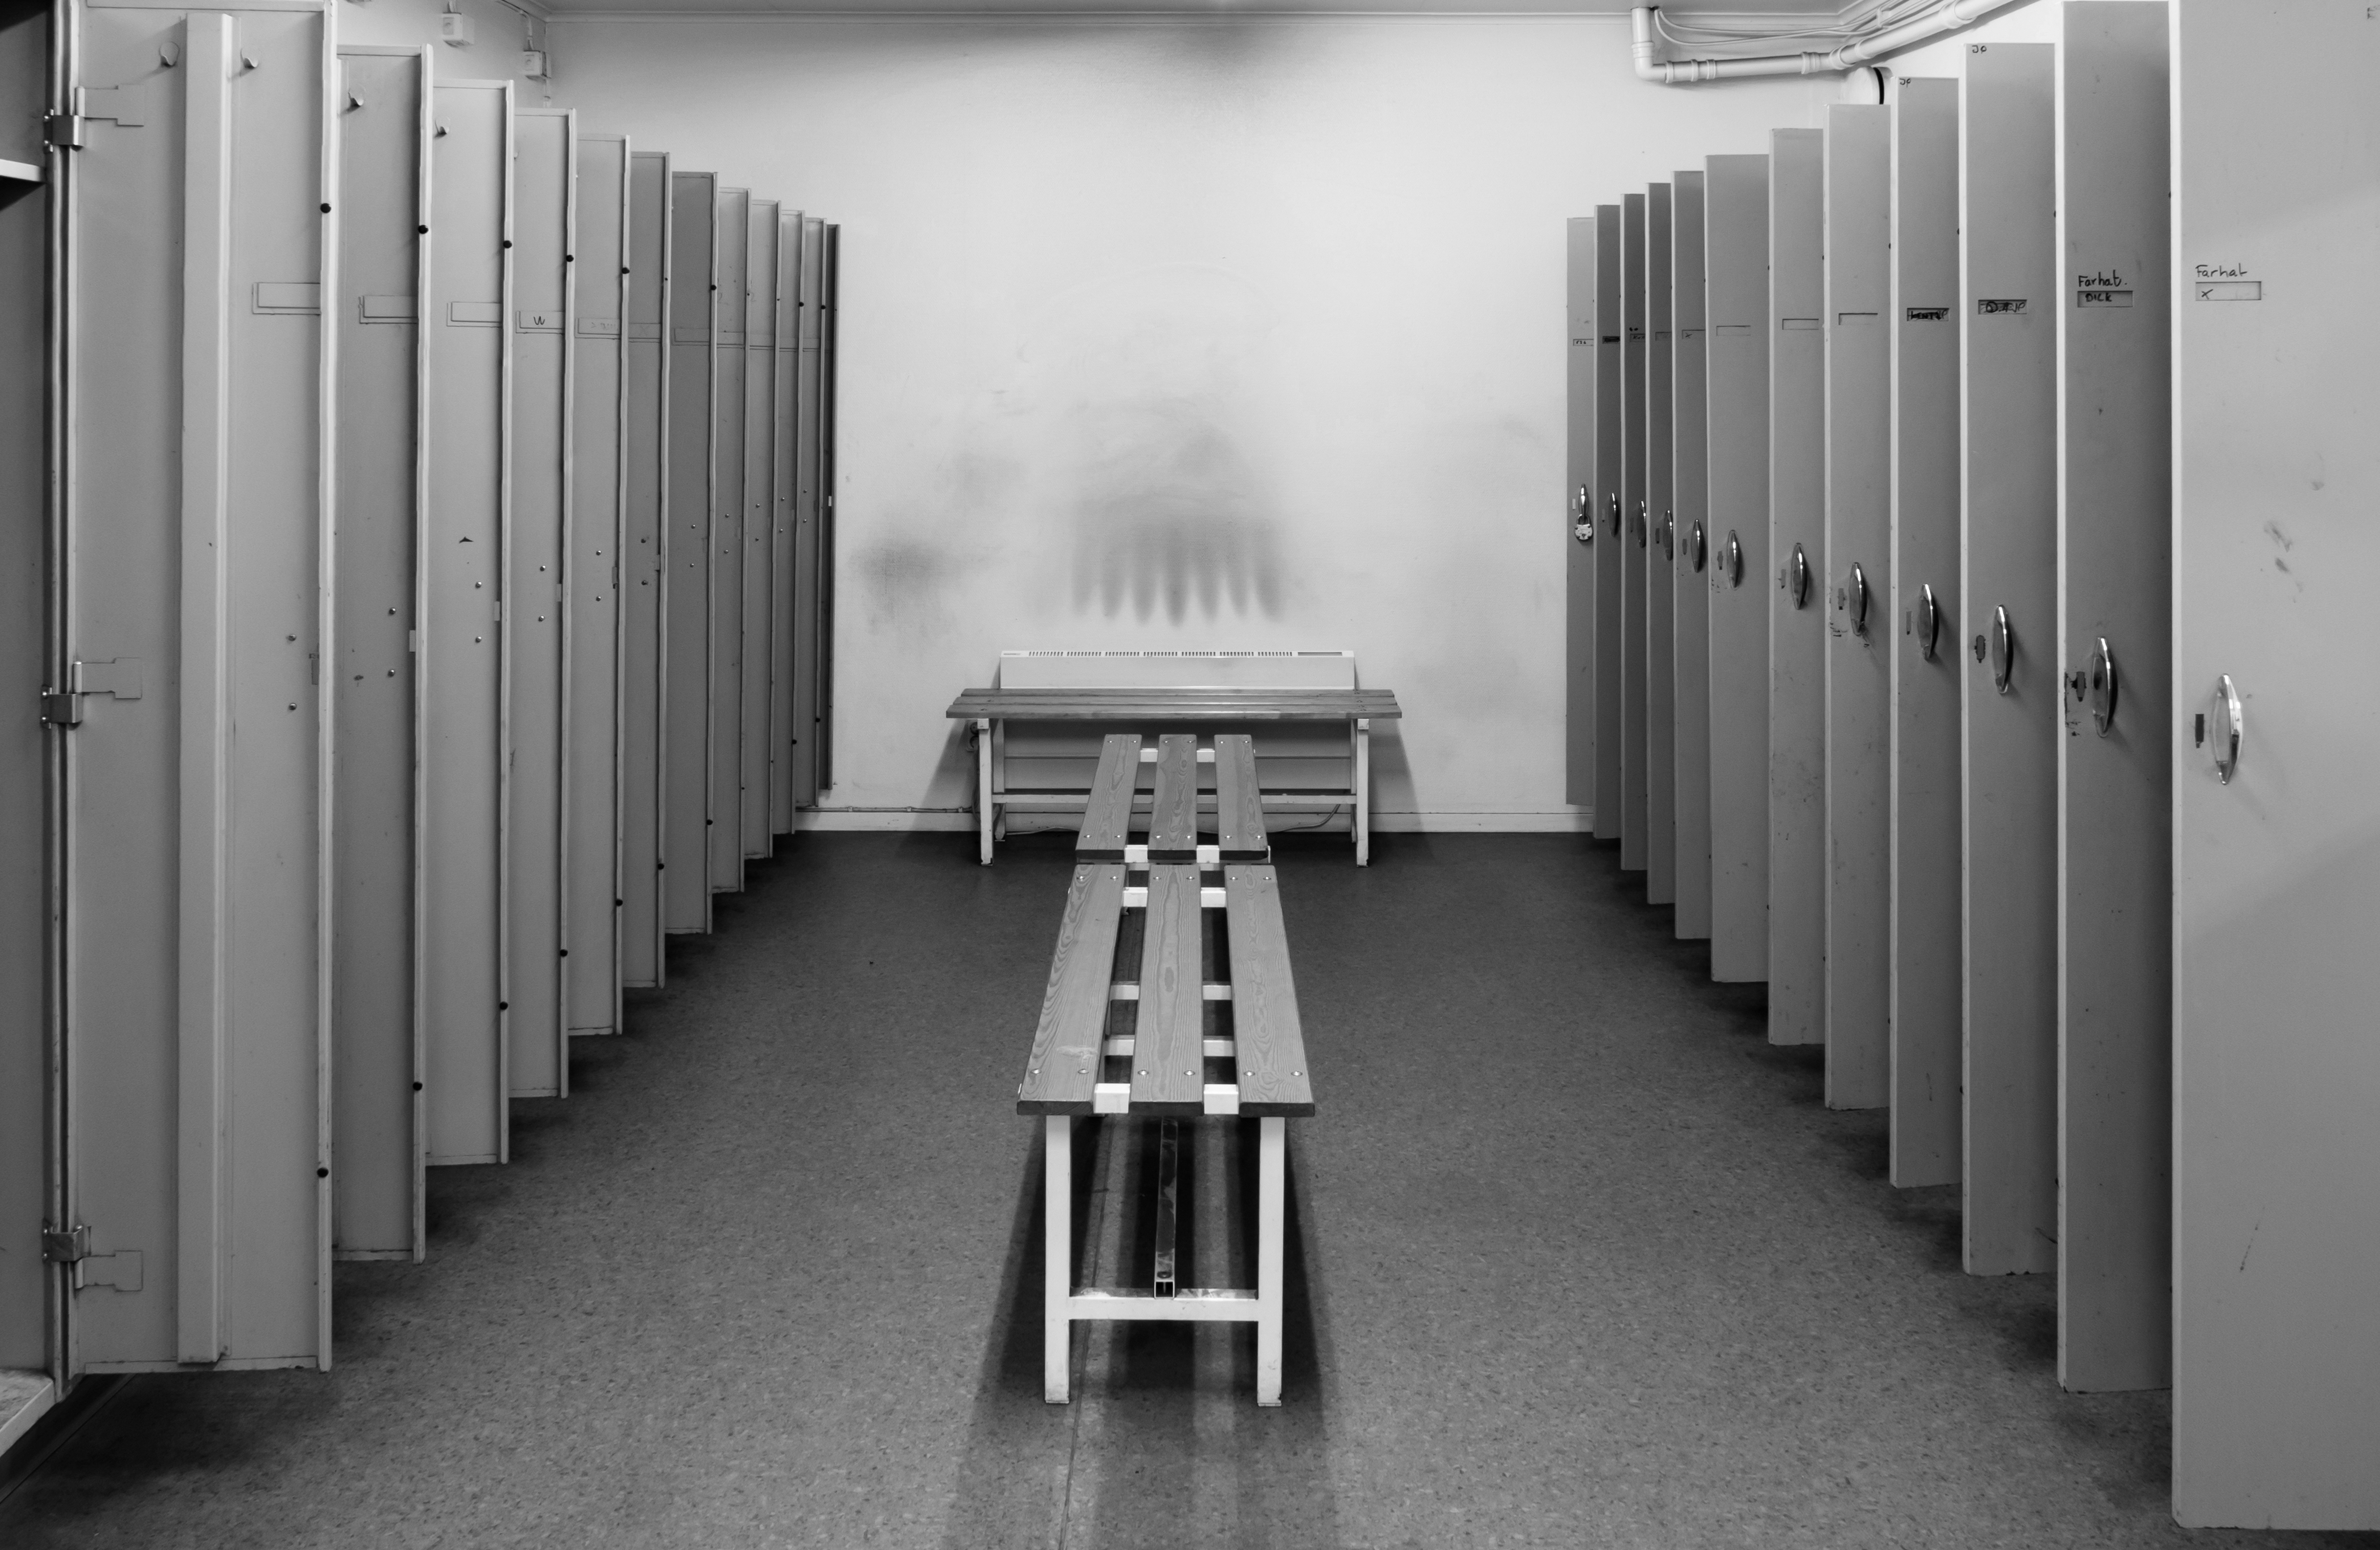 A locker room // Photo via Wikimedia Commons